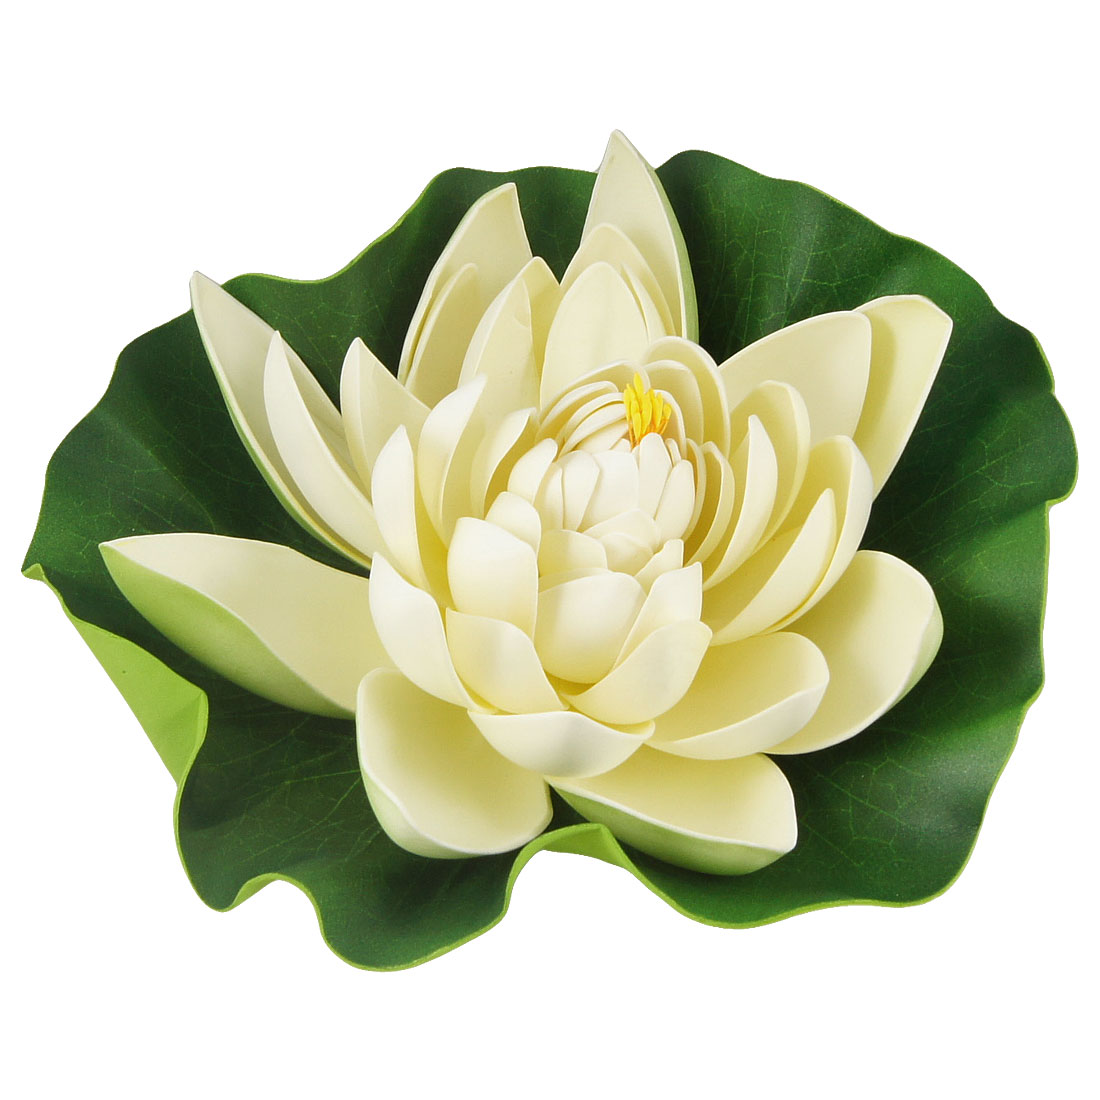 Aquarium Foam Green White Floating Lotus Ornament for Fish Tank